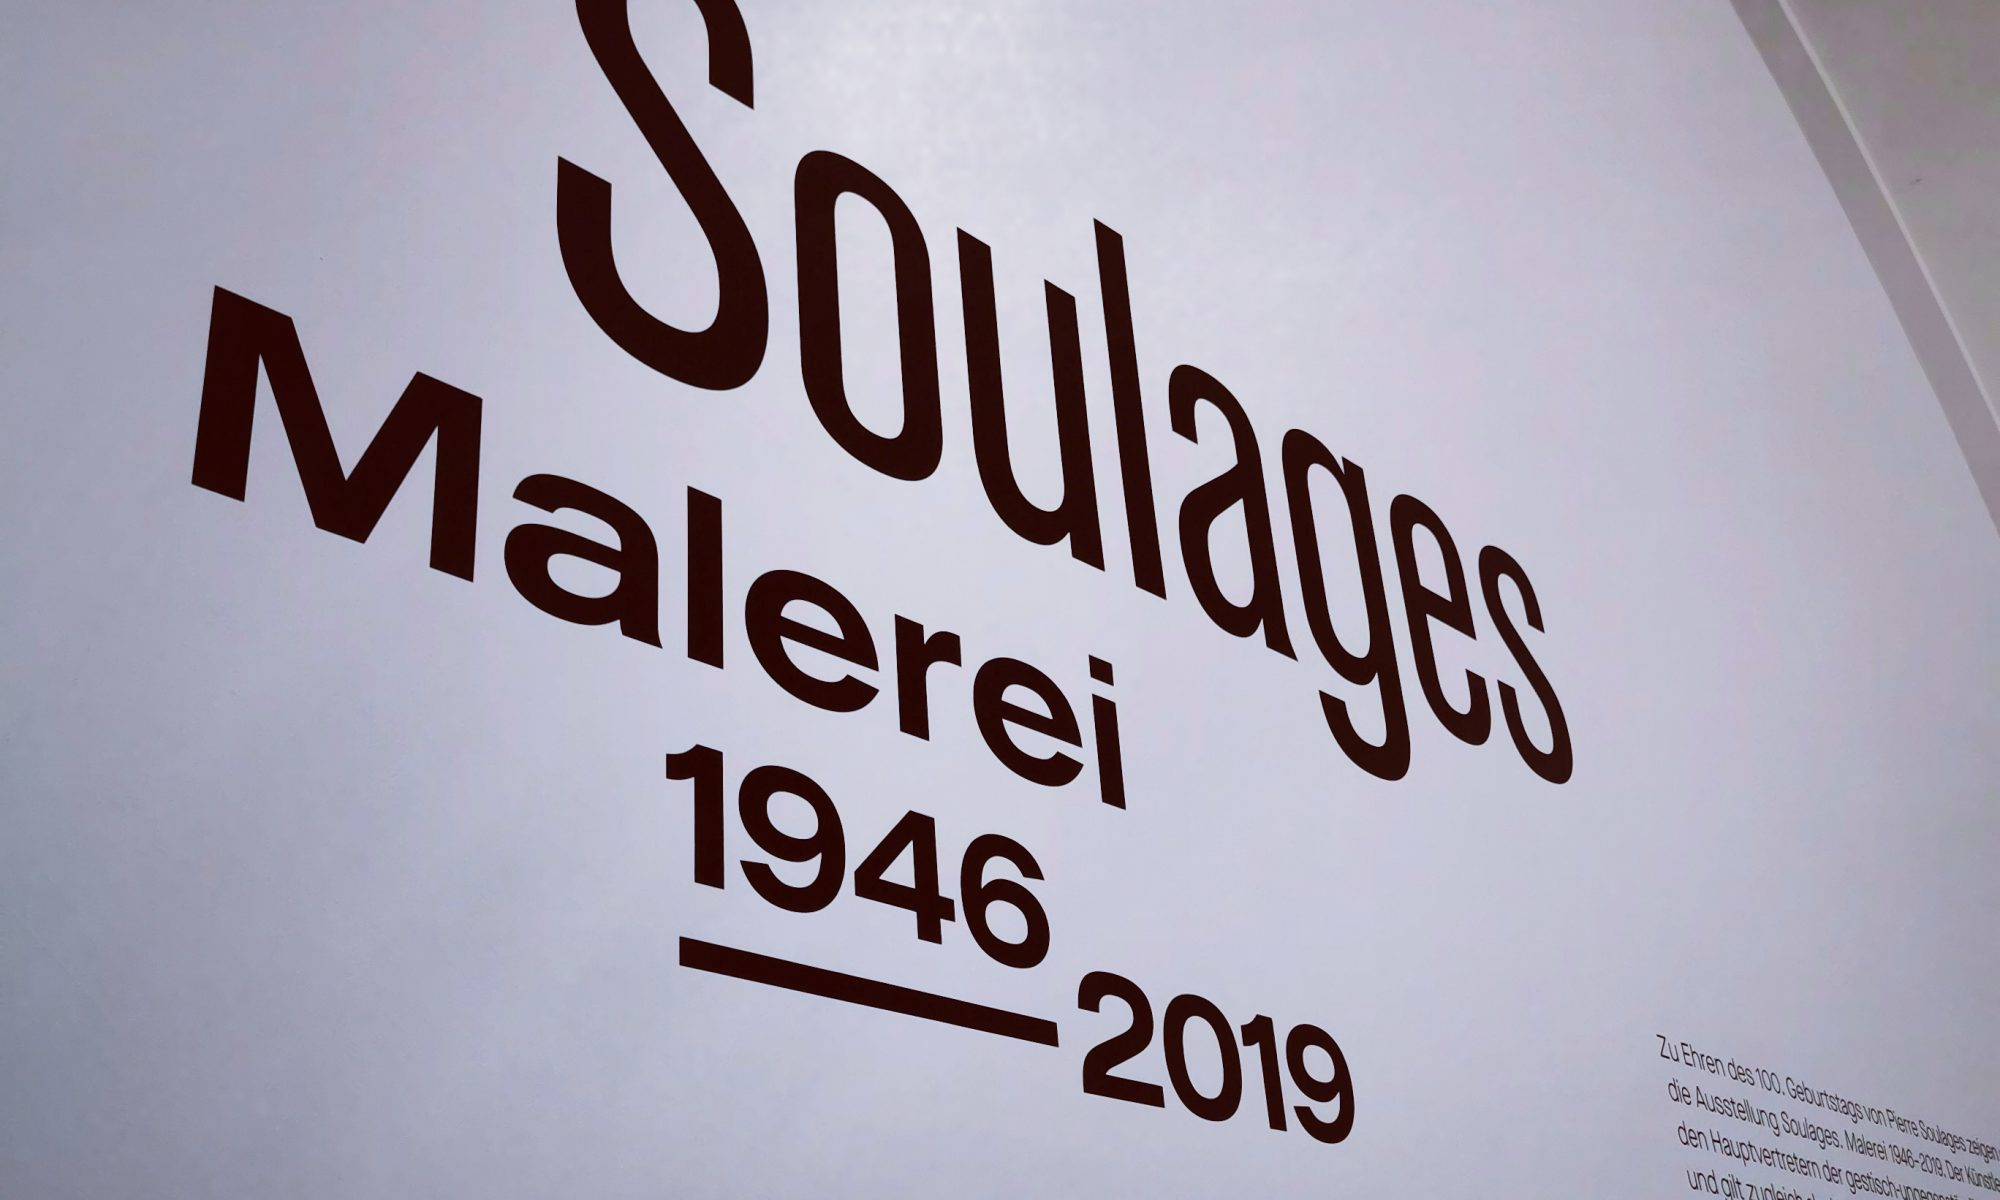 Soulages - Malerei 1946 - 2019